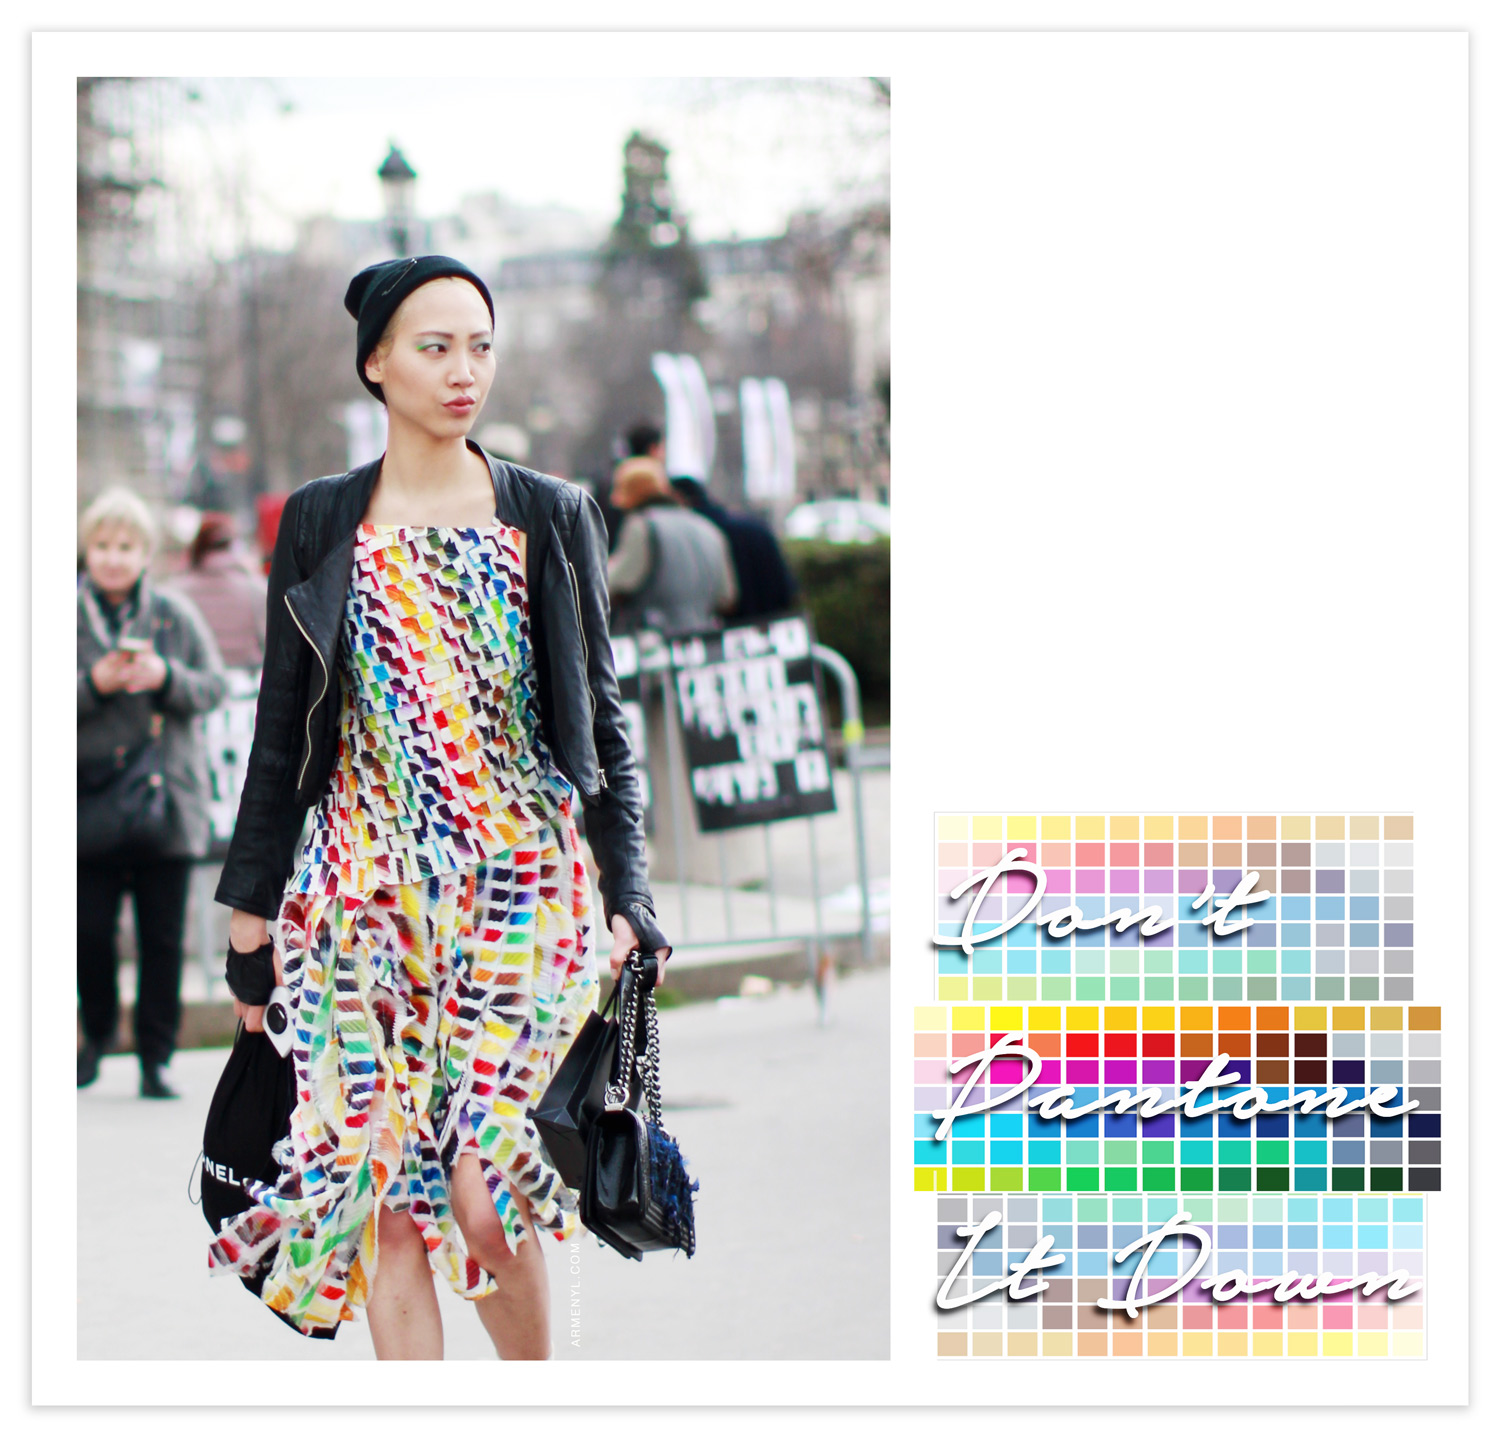 Pantone-Chanel-Print-By-Armenyl.com blessed